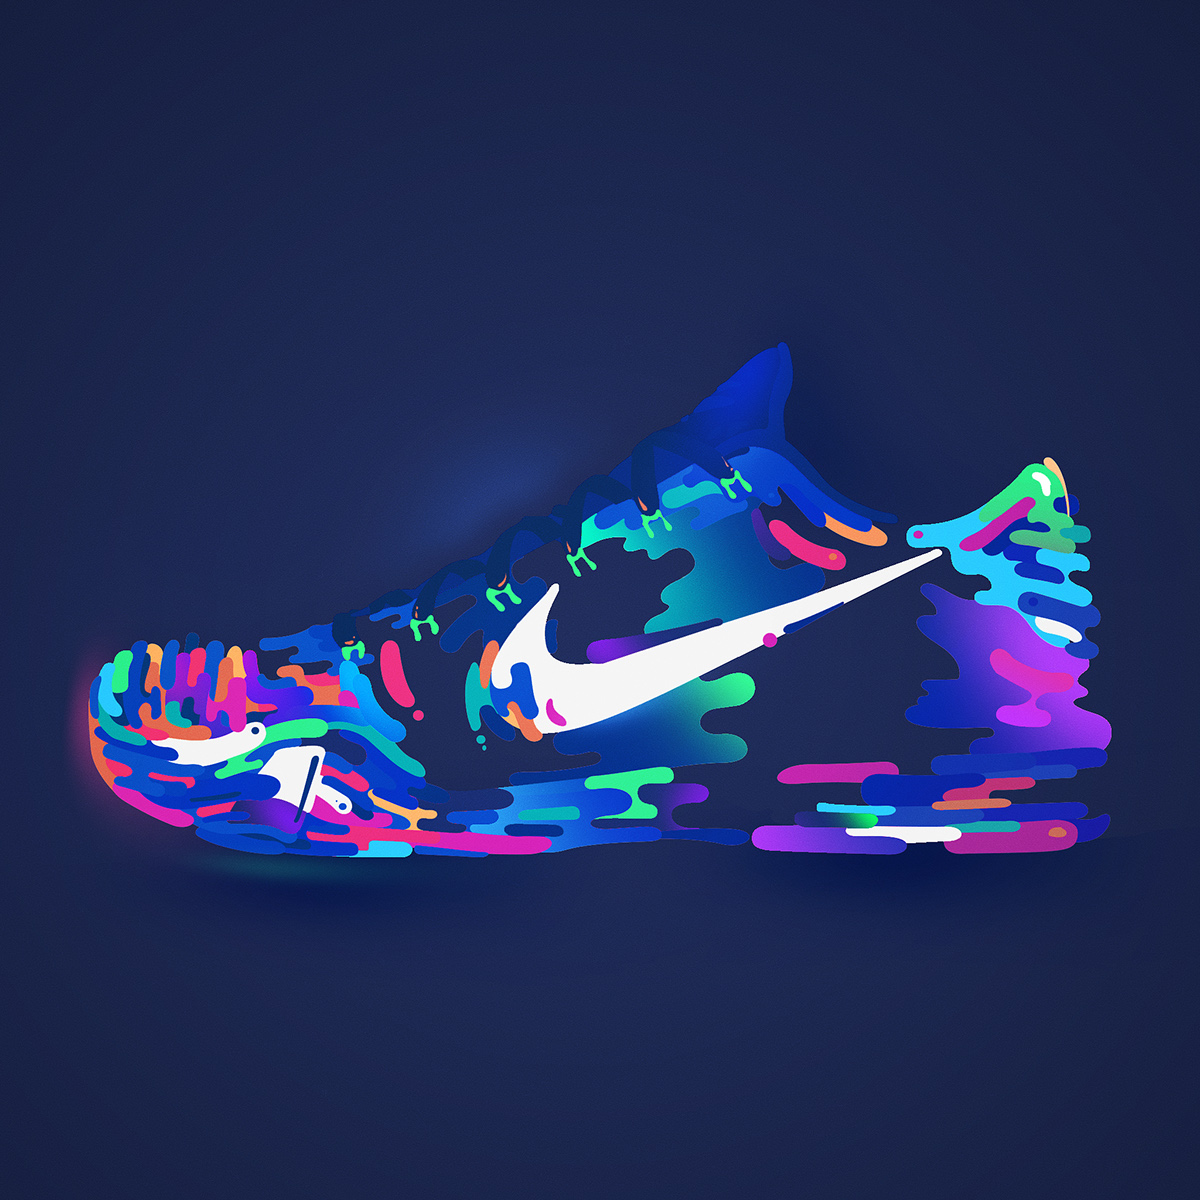 #CopOrDrop Neon on